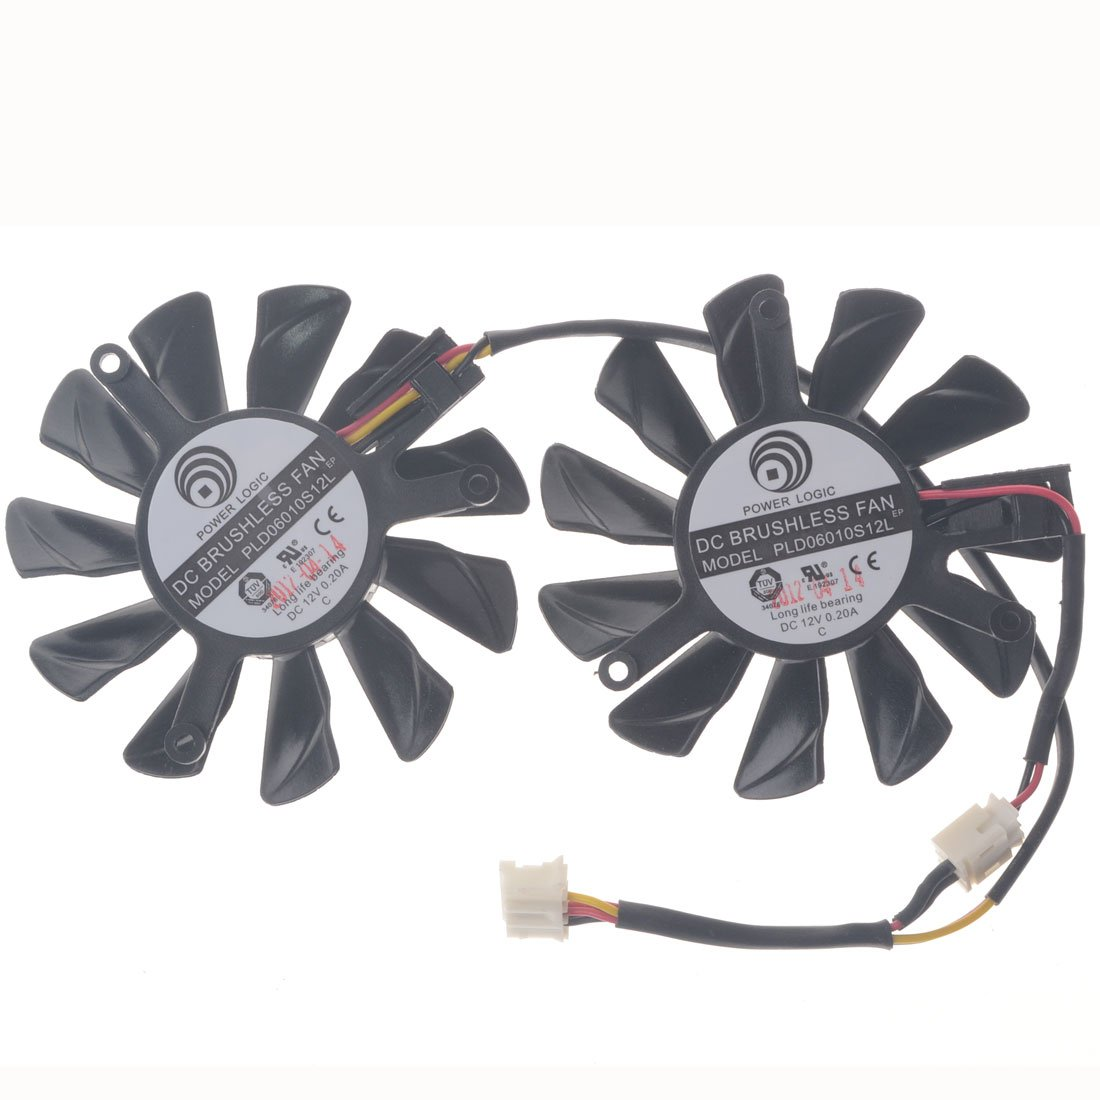 Allpartz PLD06010S12L 55mm DC 12V 0.2A 40mm 4Pin Graphics Video Card Cooling Dual Fan